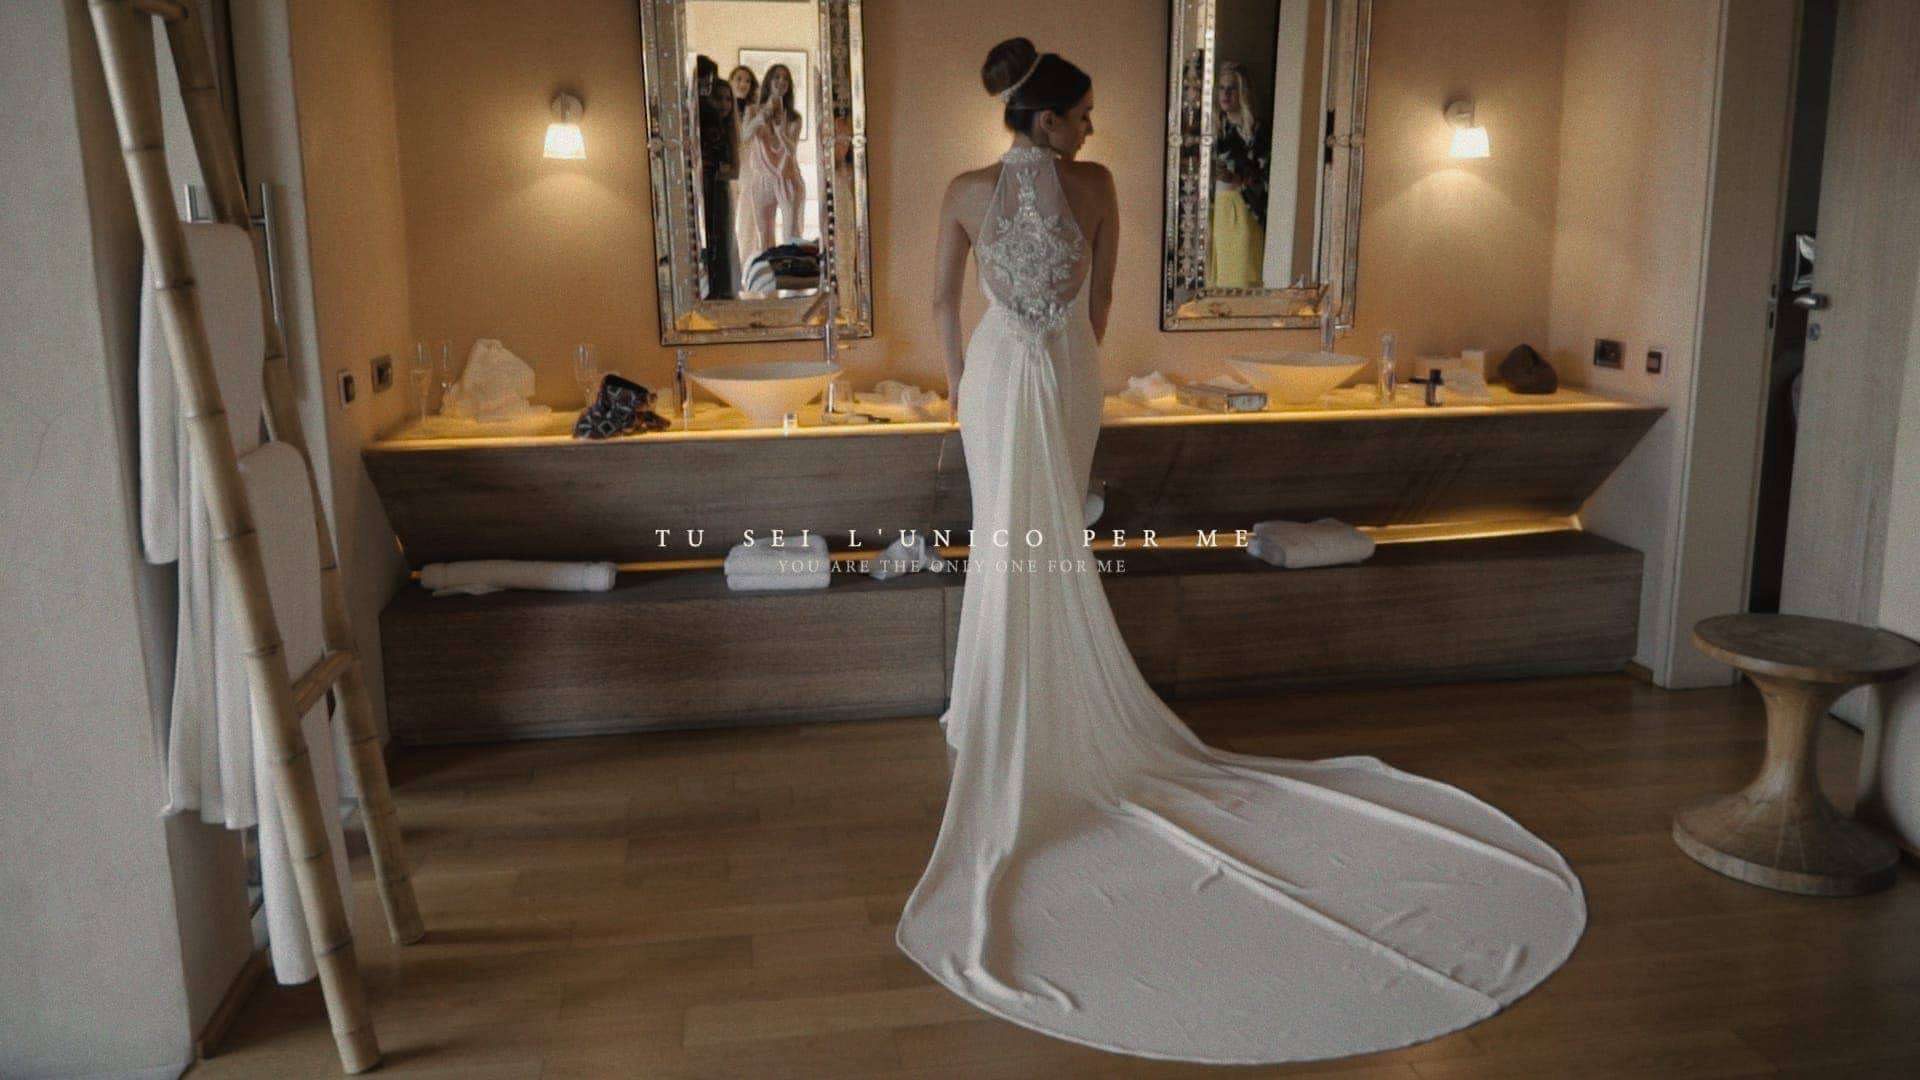 You are the only one for me - Wendalina and Dimitris - Wedding Film at Island, Athens, Greece